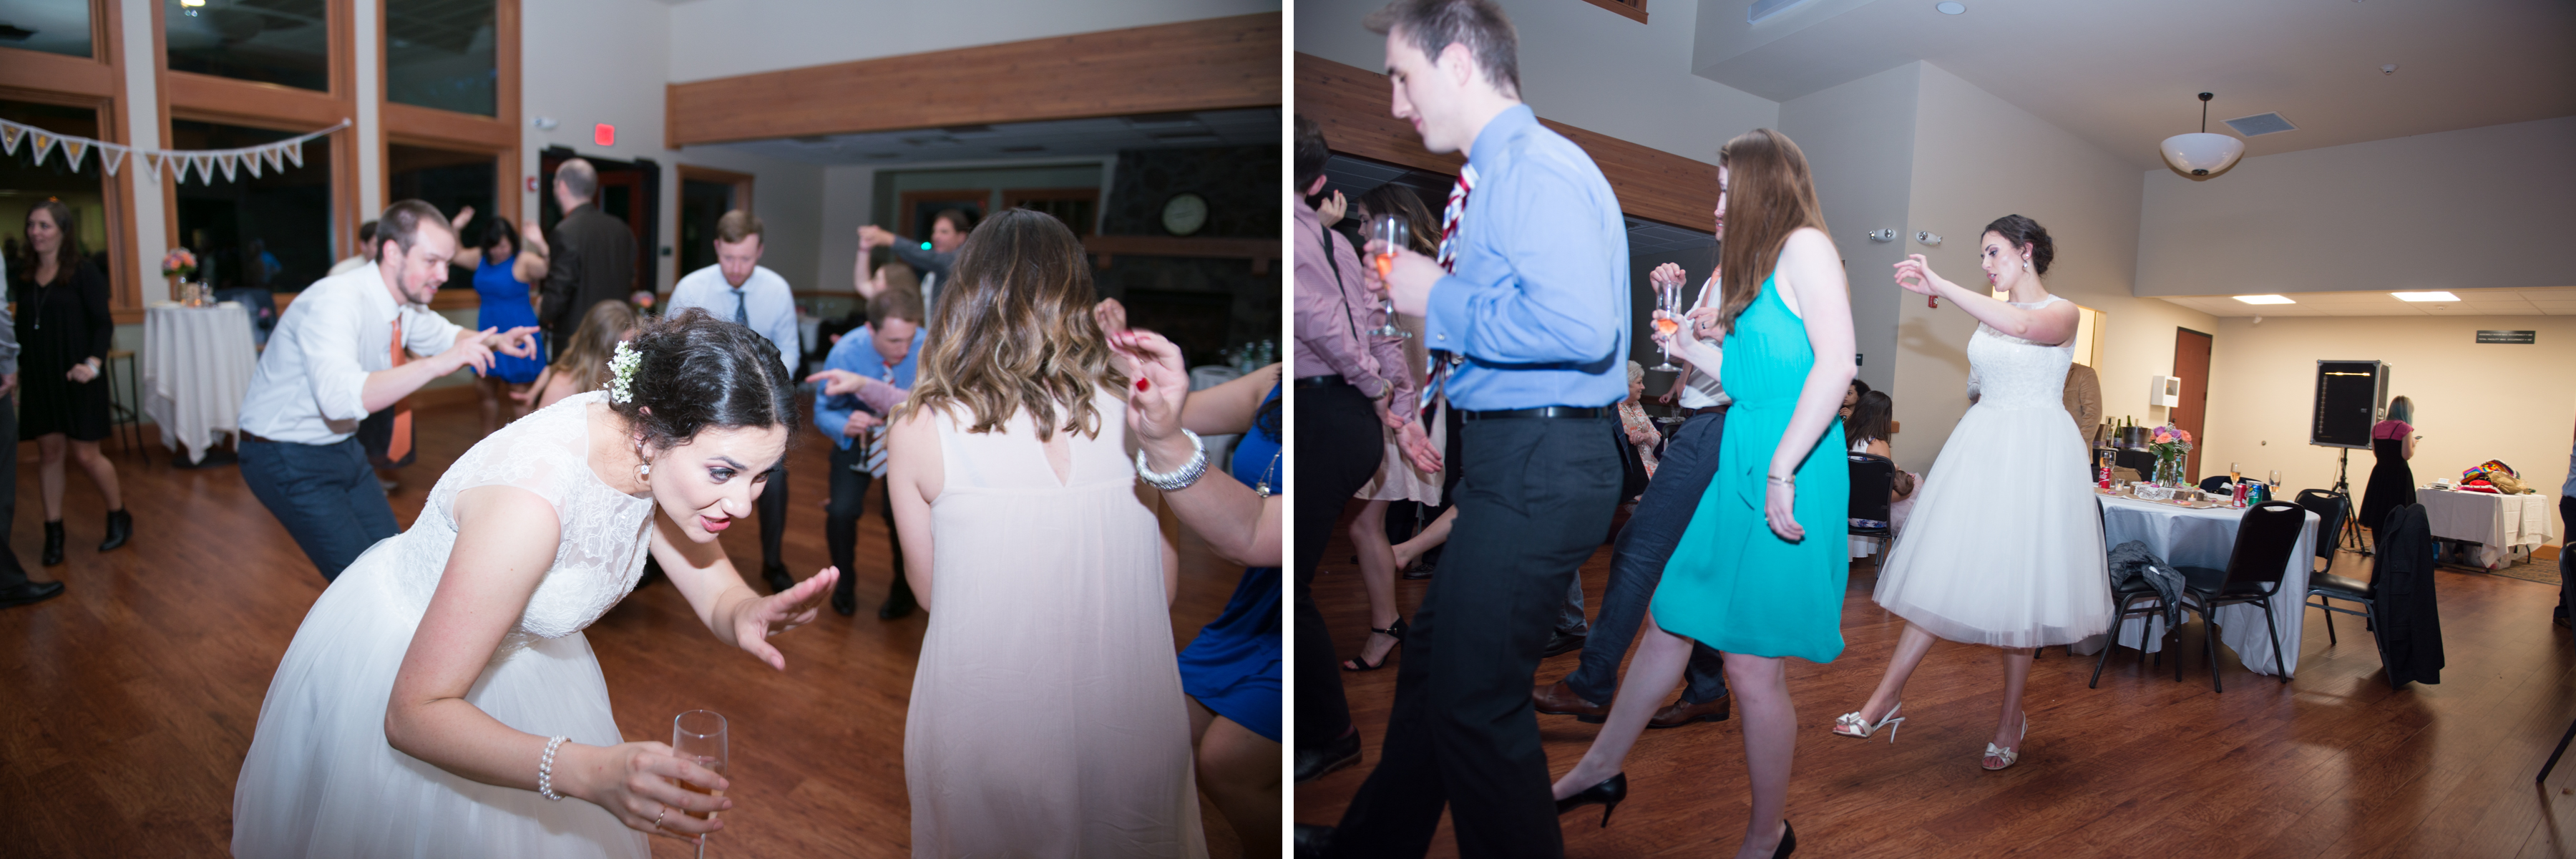 H_AMW_Blog_Dancing_n-Mather_Wedding_blog_44